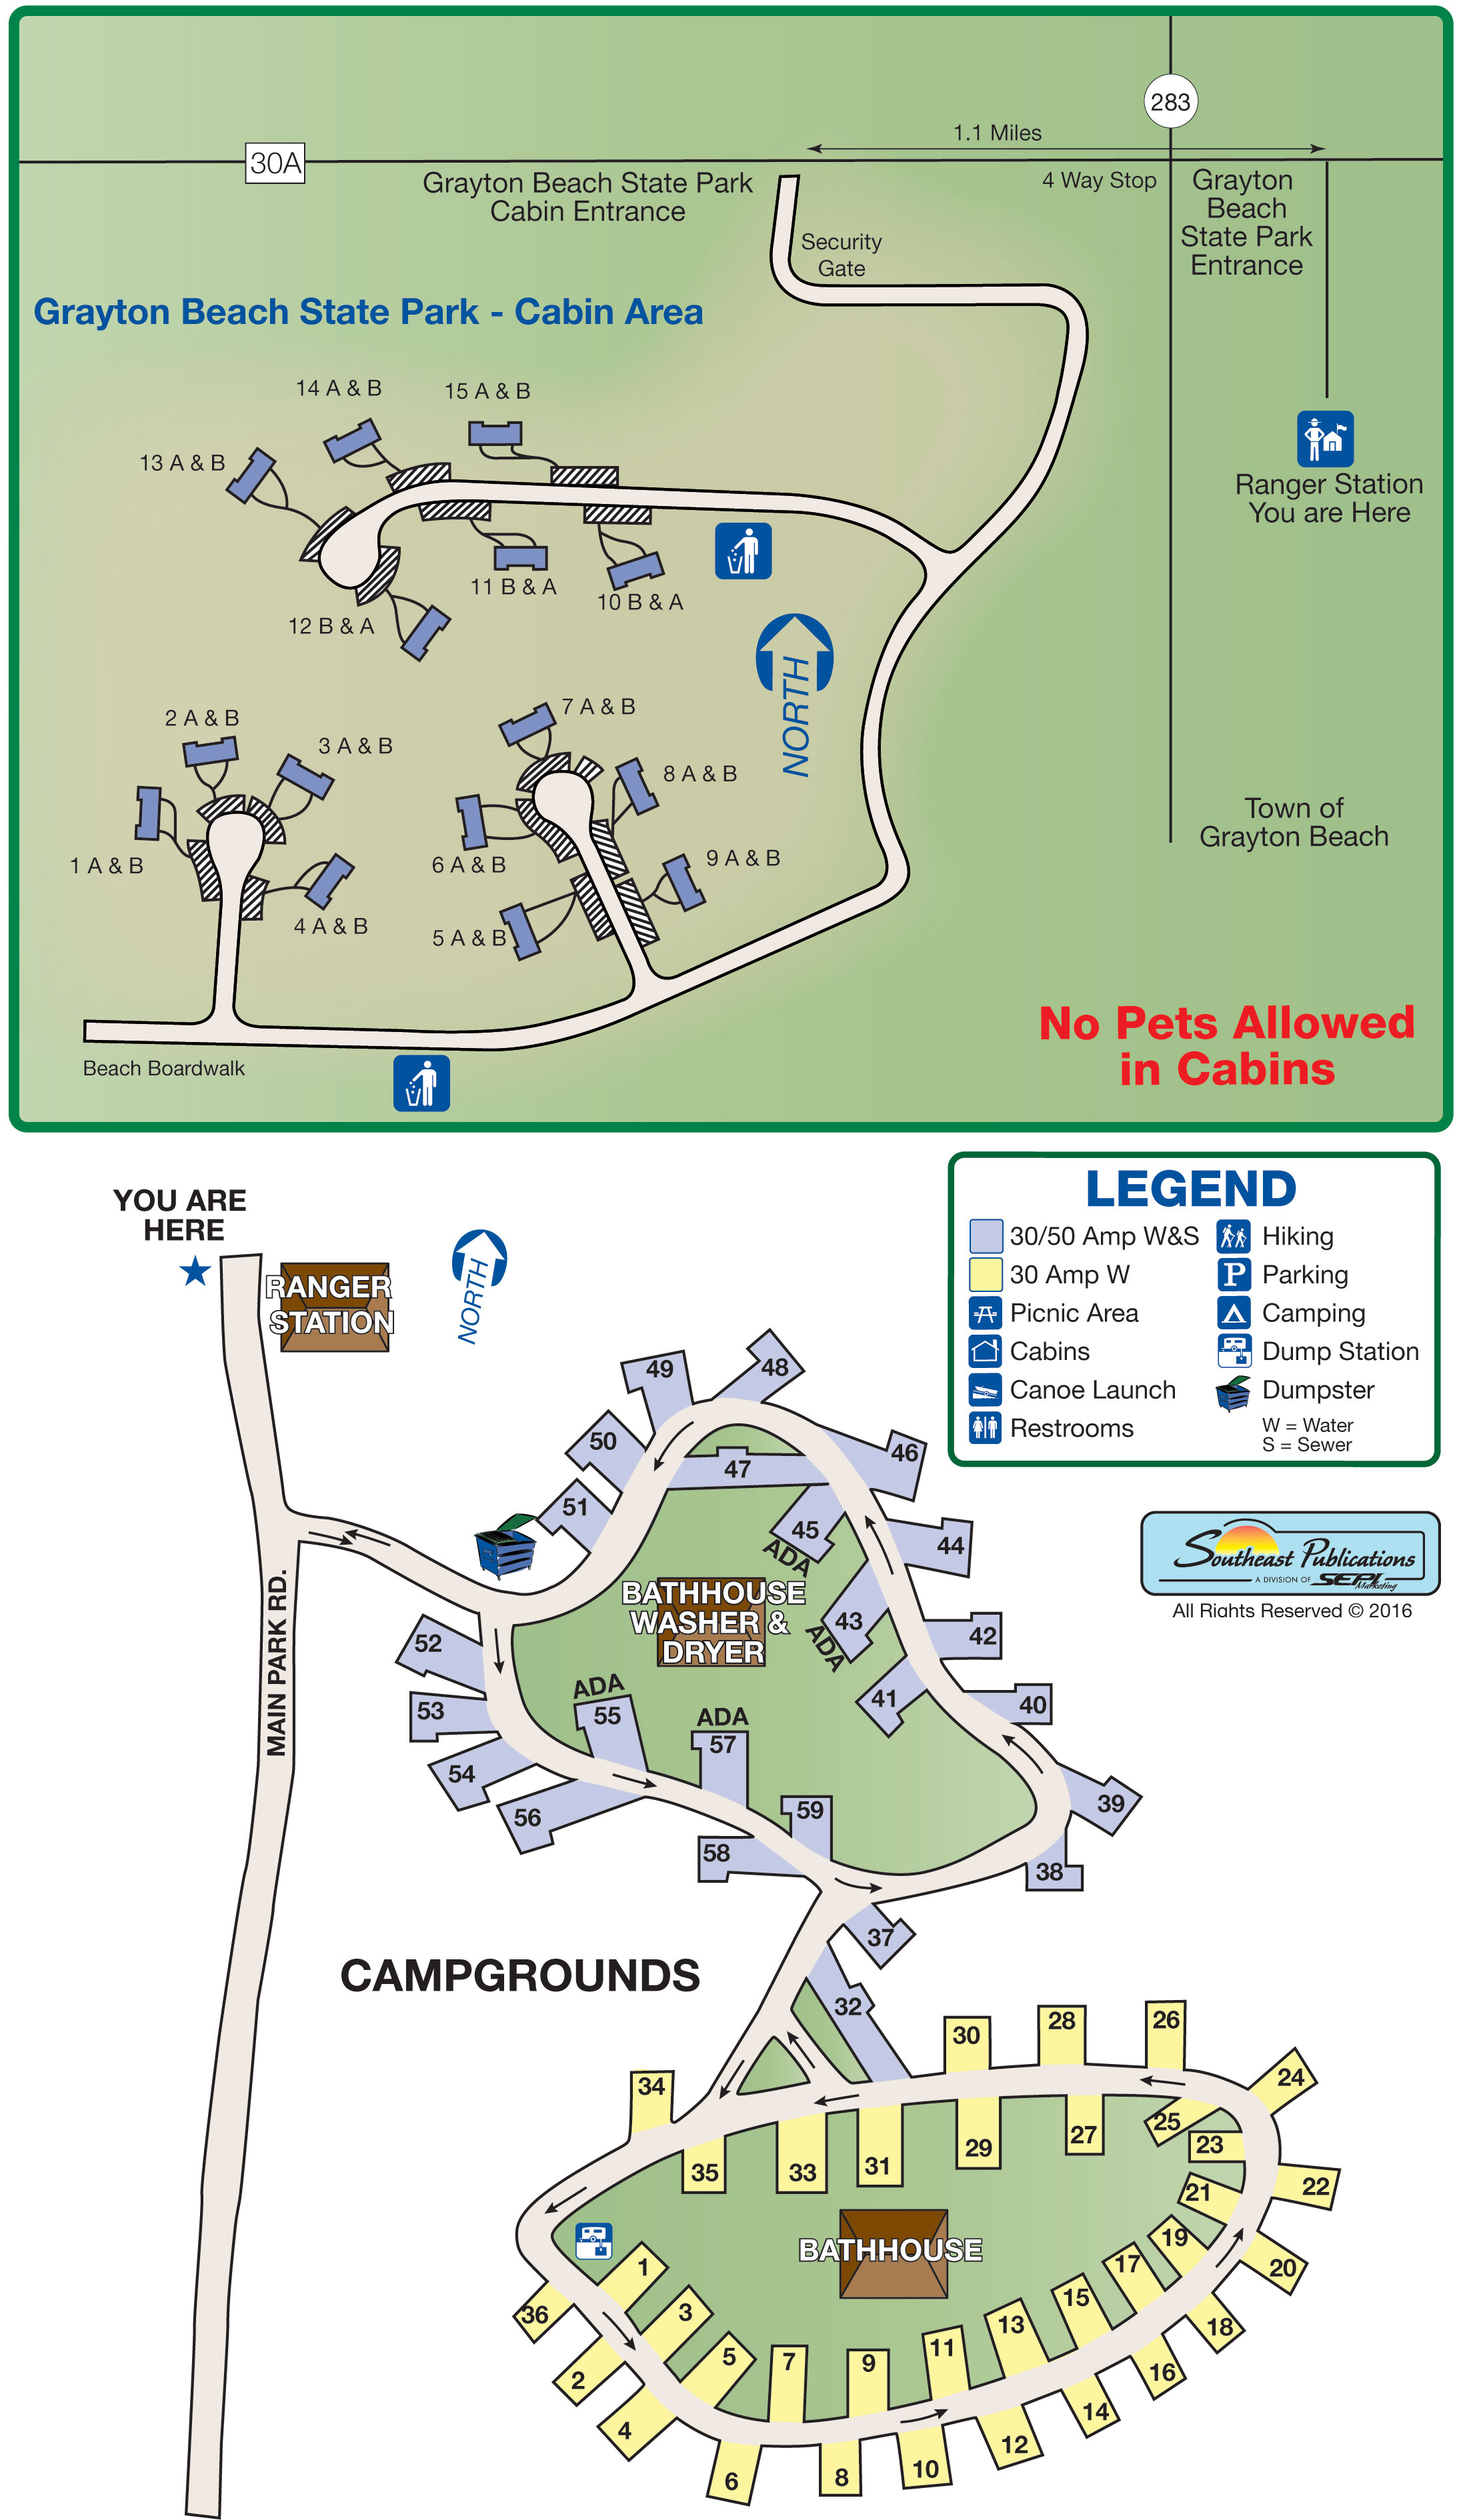 Florida State Parks Rv Camping - Know Your Campground - Florida State Rv Parks Map